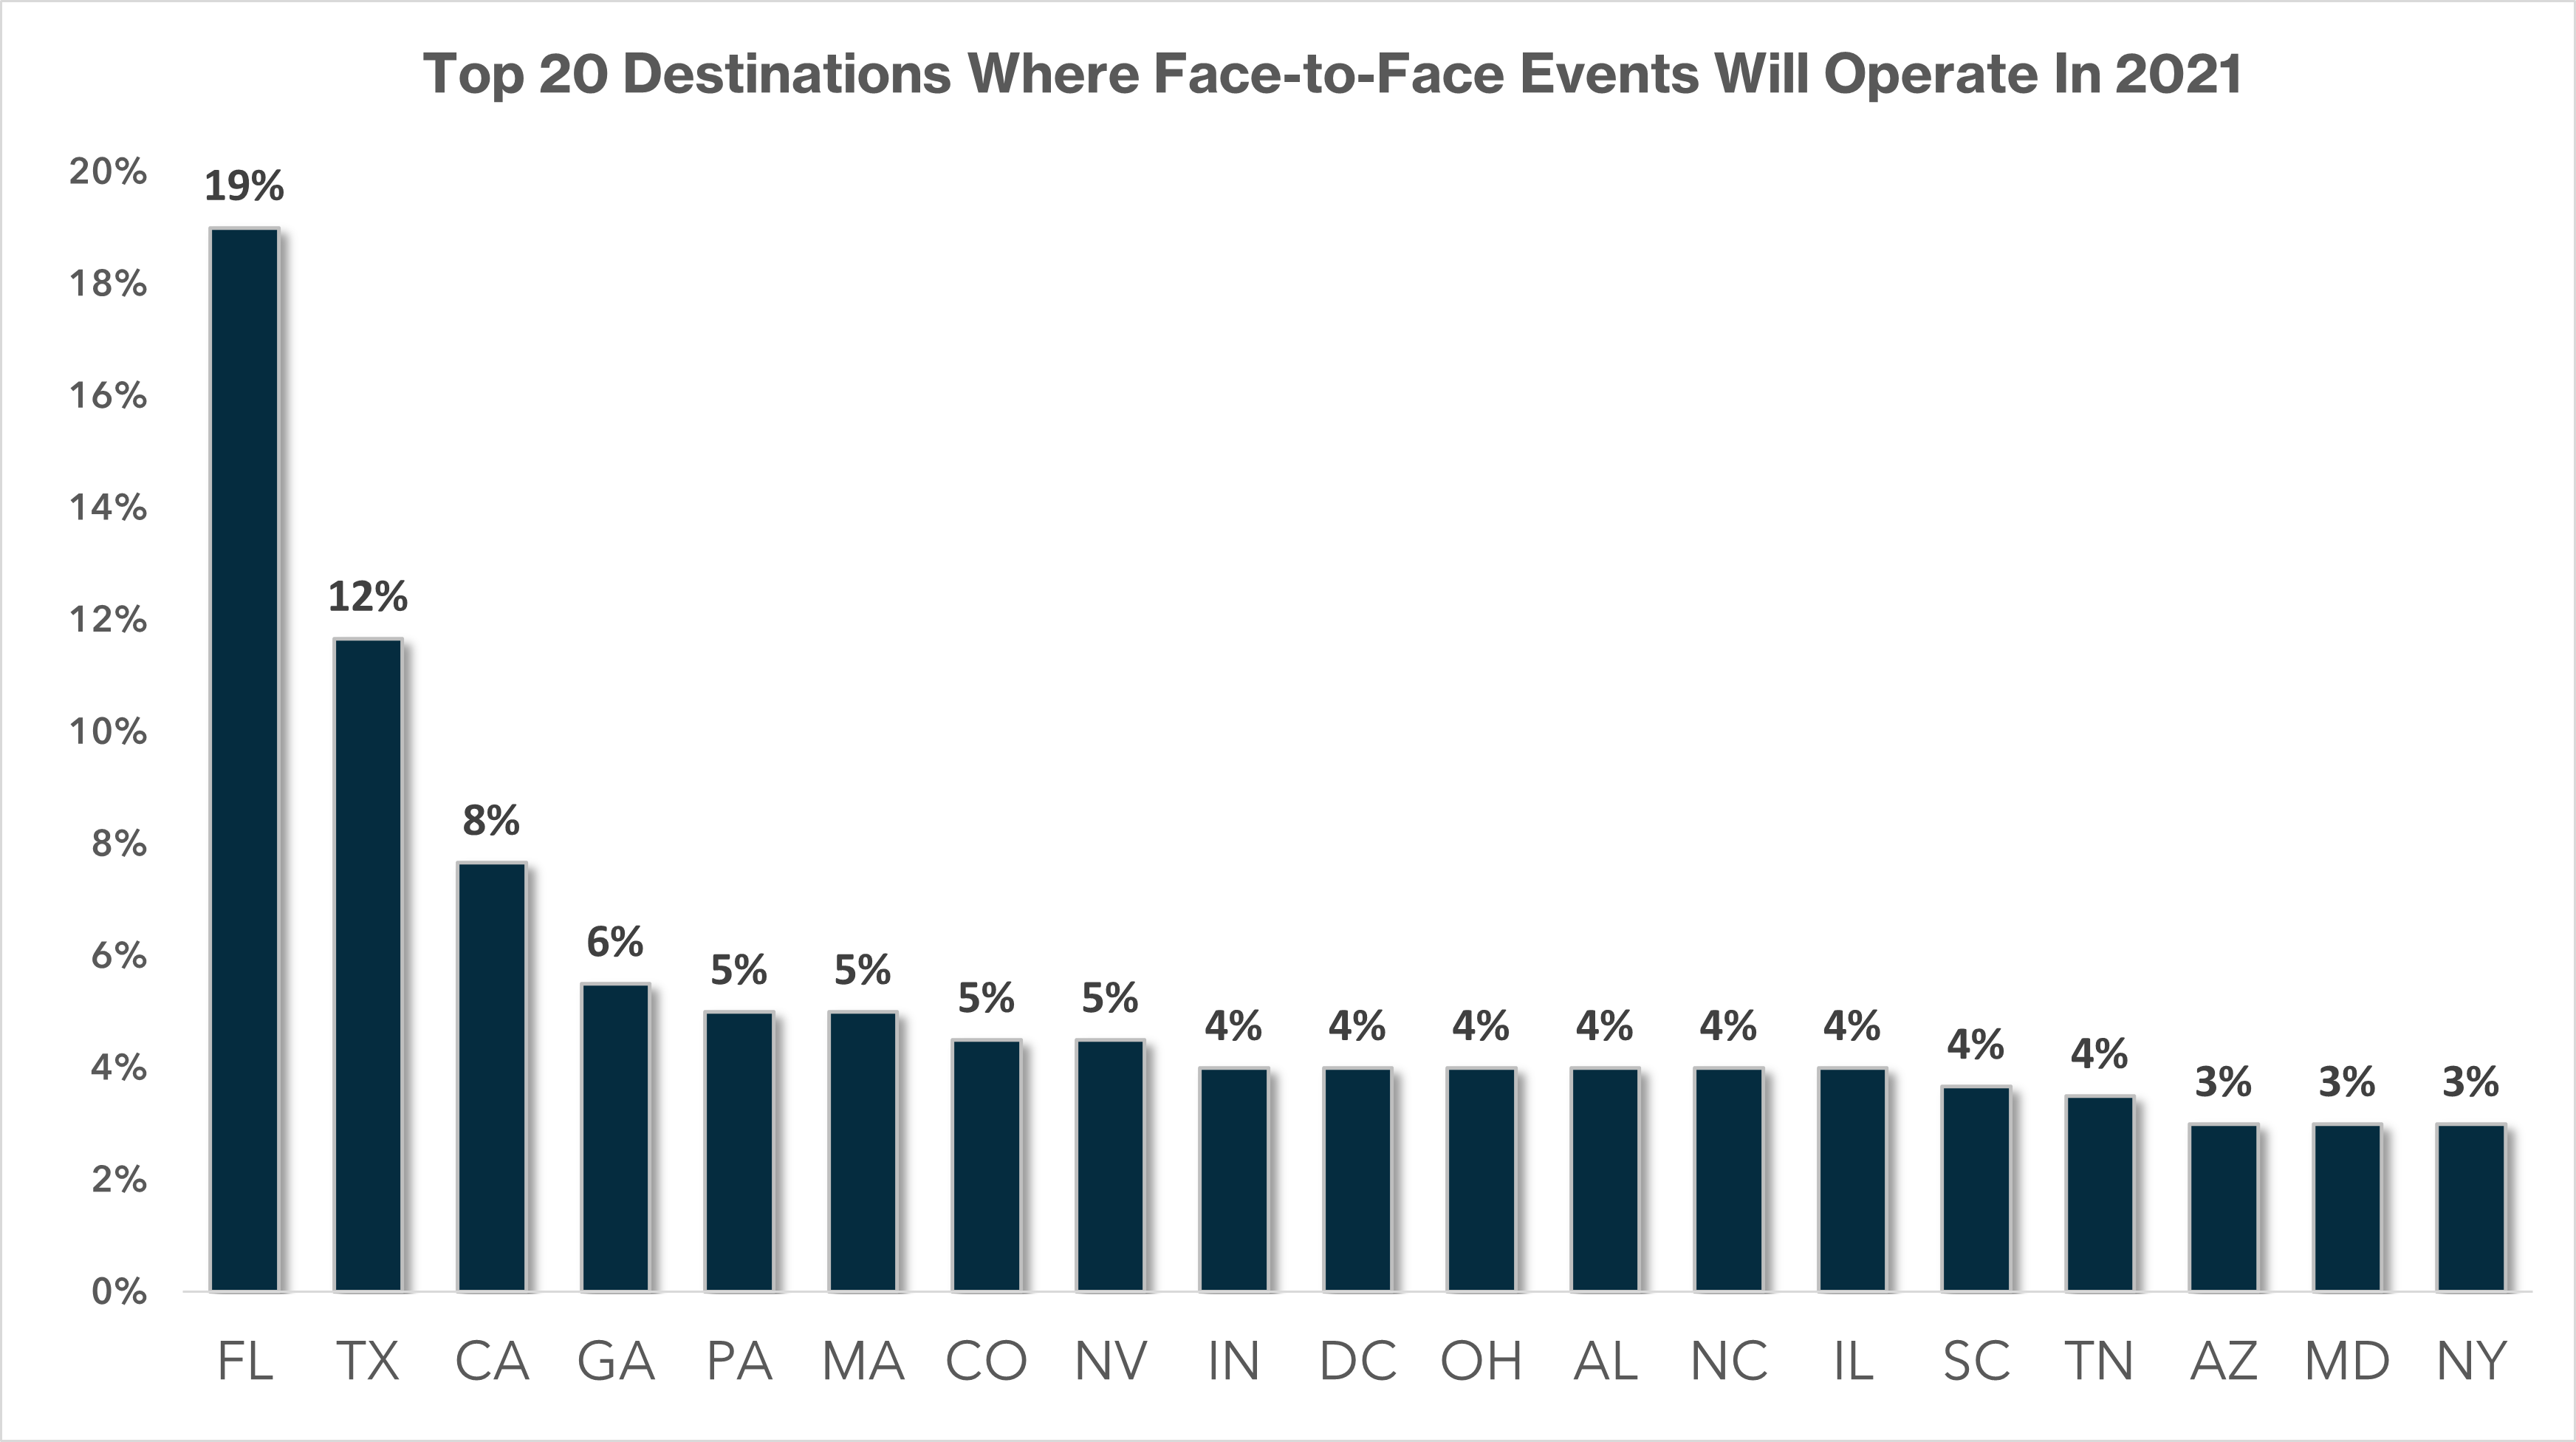 MMA_April 2021_Top 20 Destinations Where Face-to-Face Events Will Operate In 2021